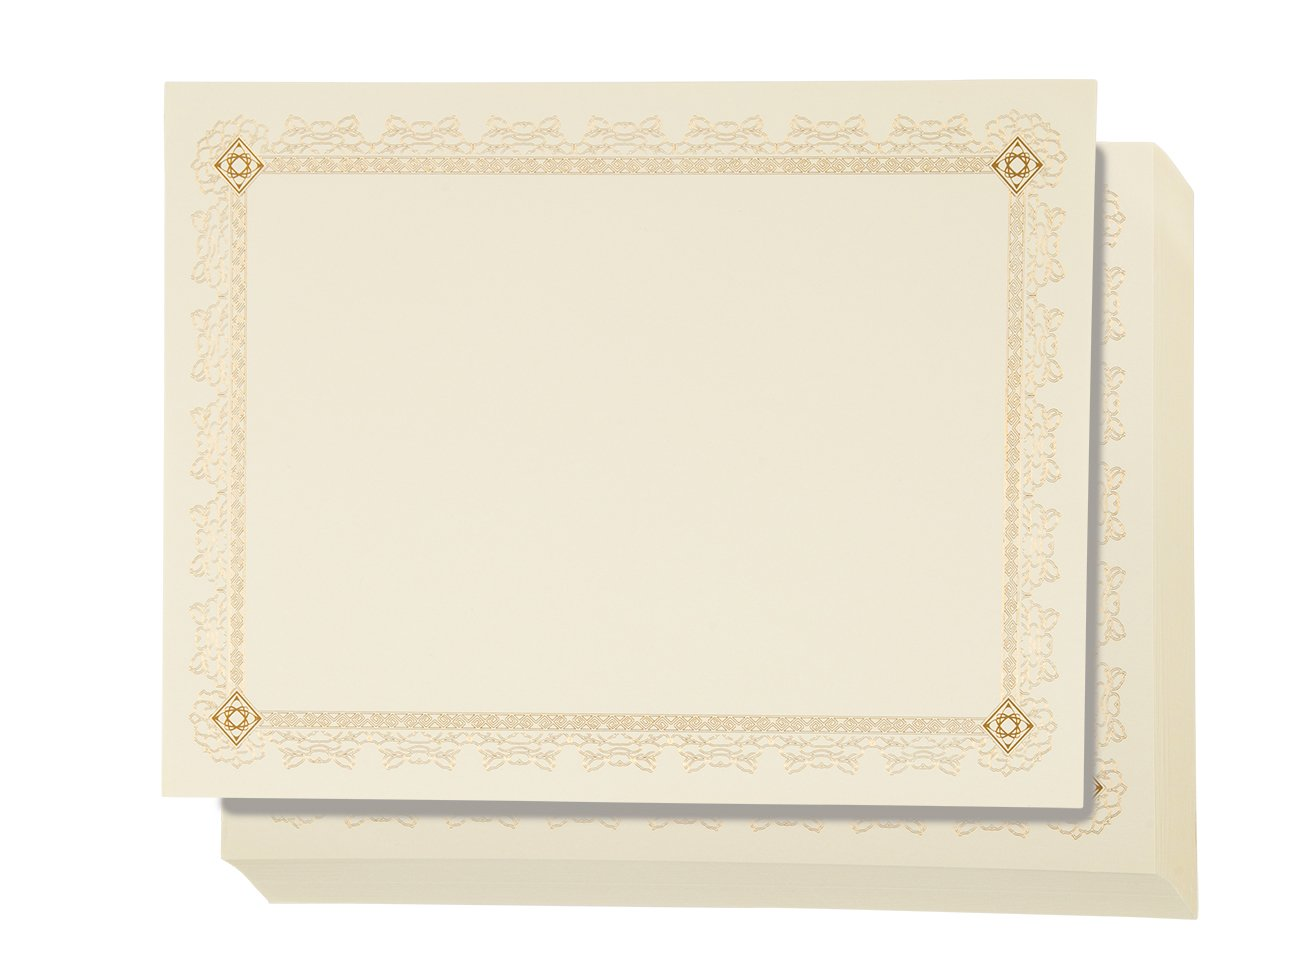 48 Pack Certificate Papers - Letter Size Blank Award Certificates Paper, Gold Foil Leaves Border Specialty Recognition Diploma Paper, Laser and Inkjet Printer Friendly, Gold, 8.5 x 11 inches